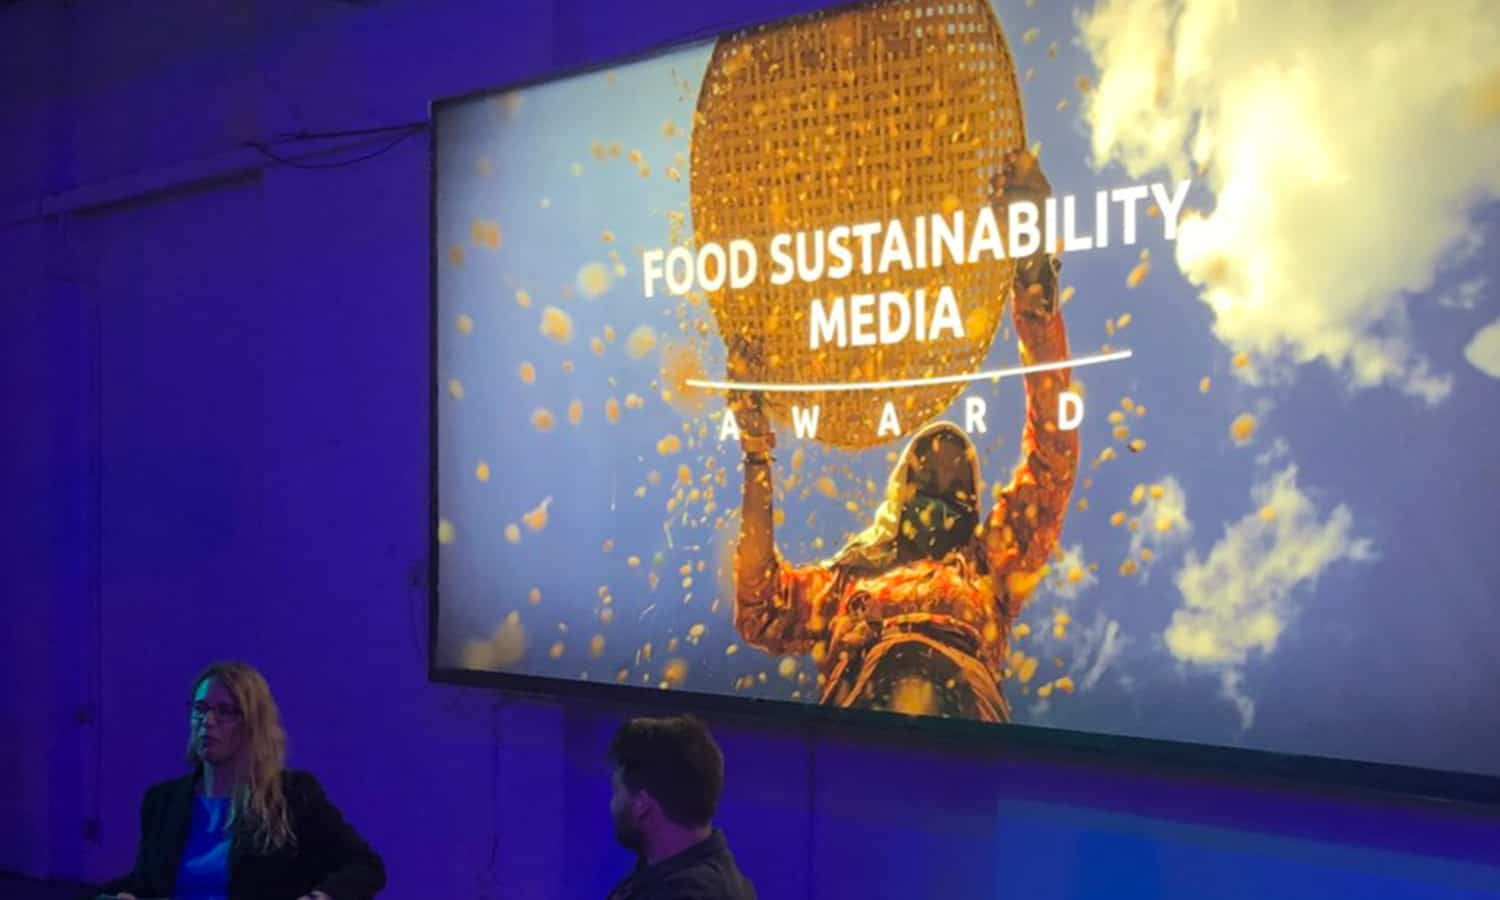 A celebration of the Food Sustainability Media Awards put the spotlight on stories of food that not only tastes good but does good for society and the plant by contributing to a more sustainable food system.